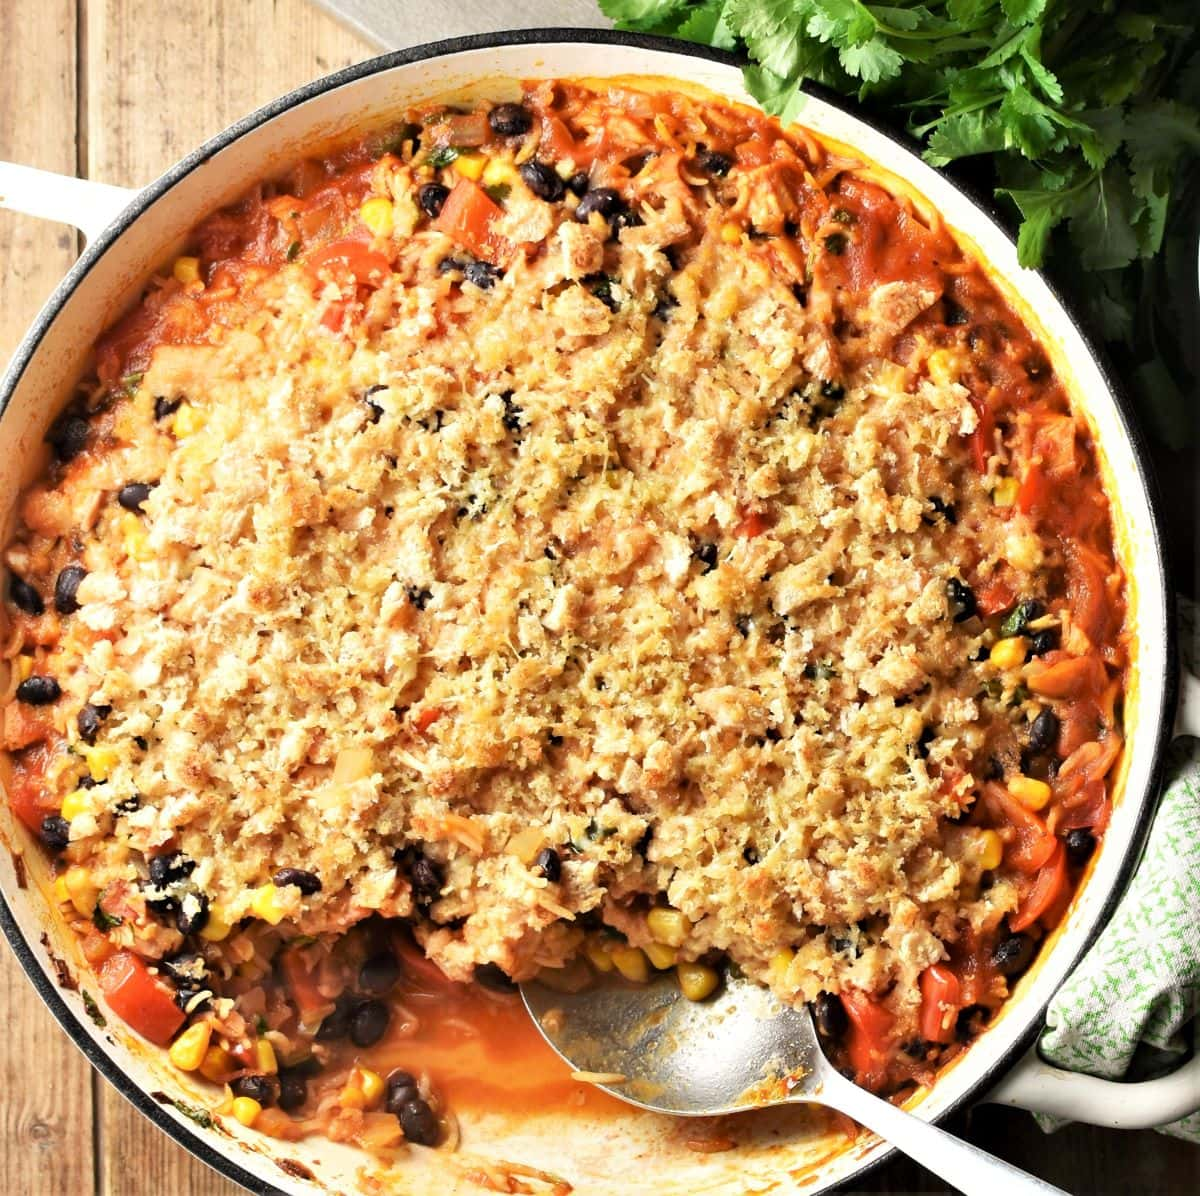 Turkey and rice casserole in large shallow pan with spoon.